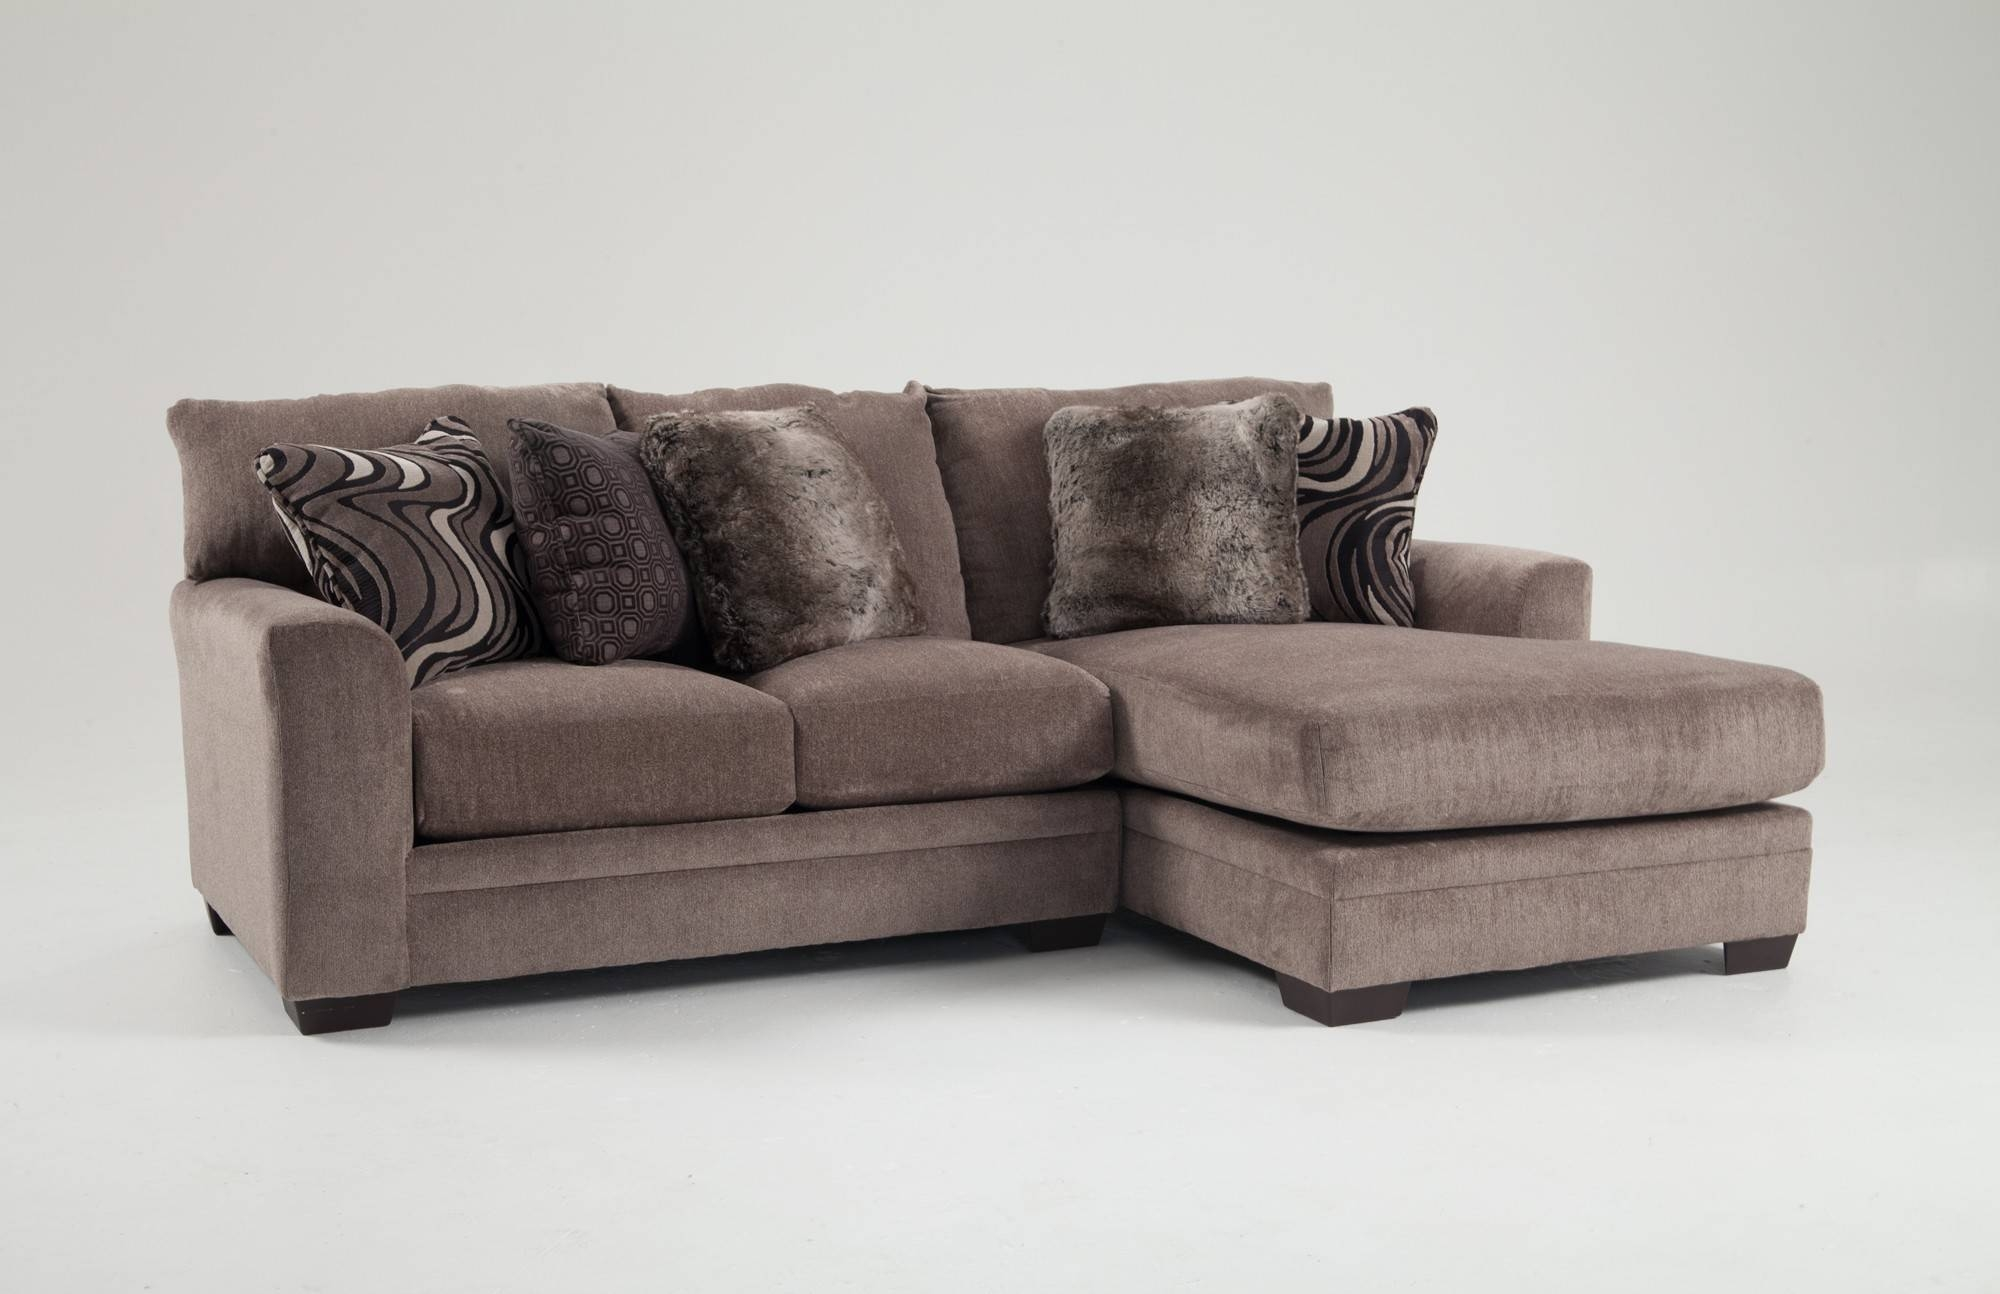 Luxe 2 Piece Left Arm Facing Sectional With Chaise | Bob's Pertaining To Sectional Sofa With 2 Chaises (View 24 of 30)